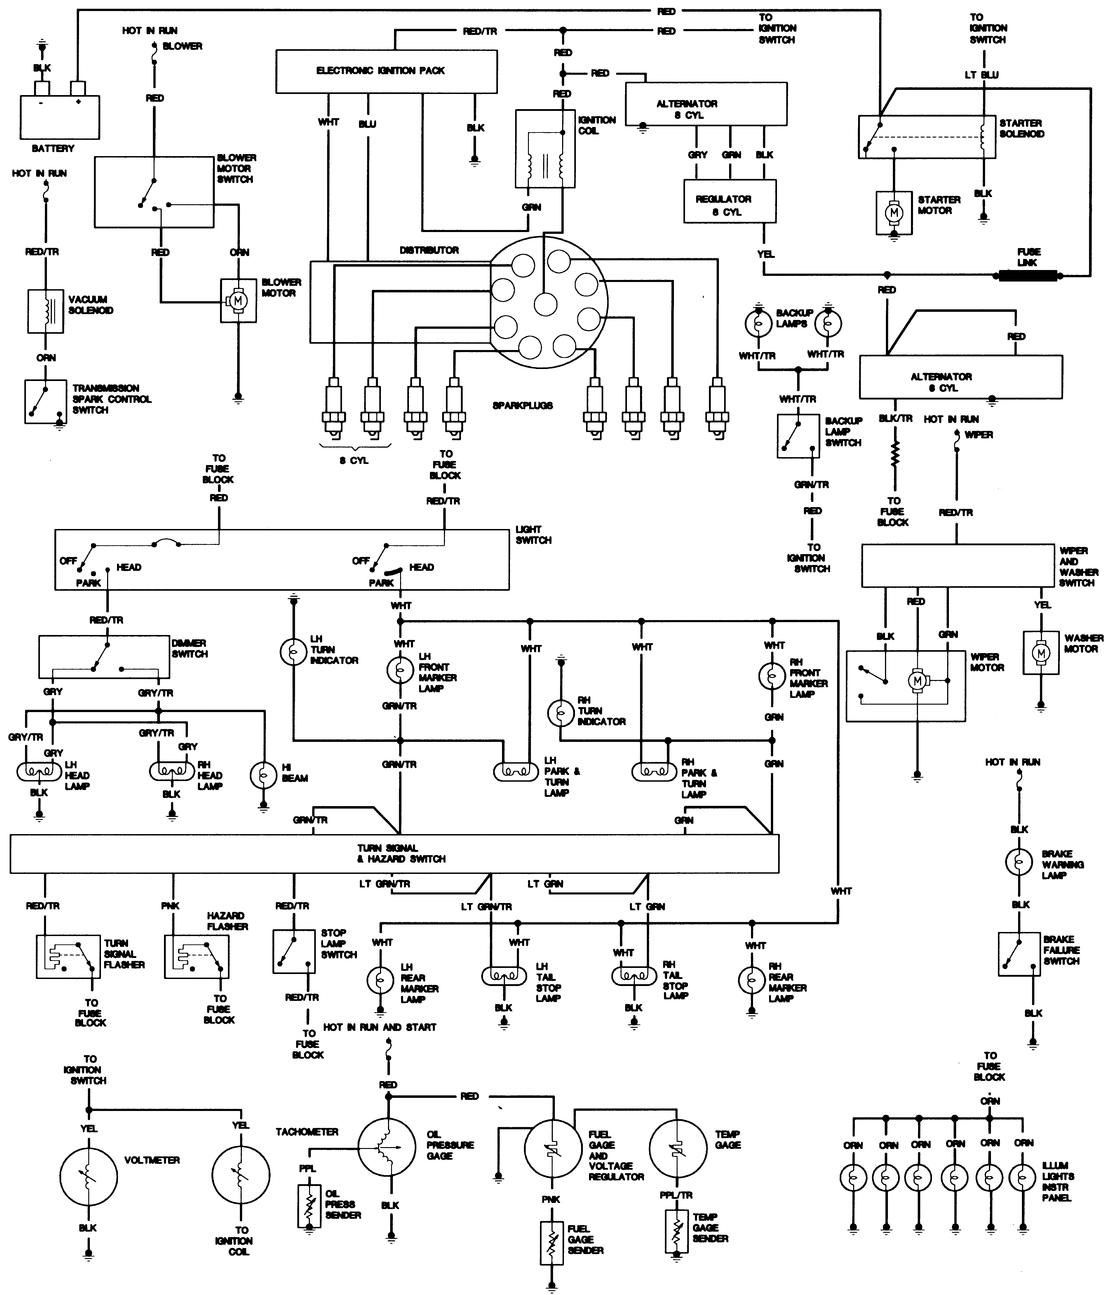 1980 Jeep Cj5 Wiring Diagram